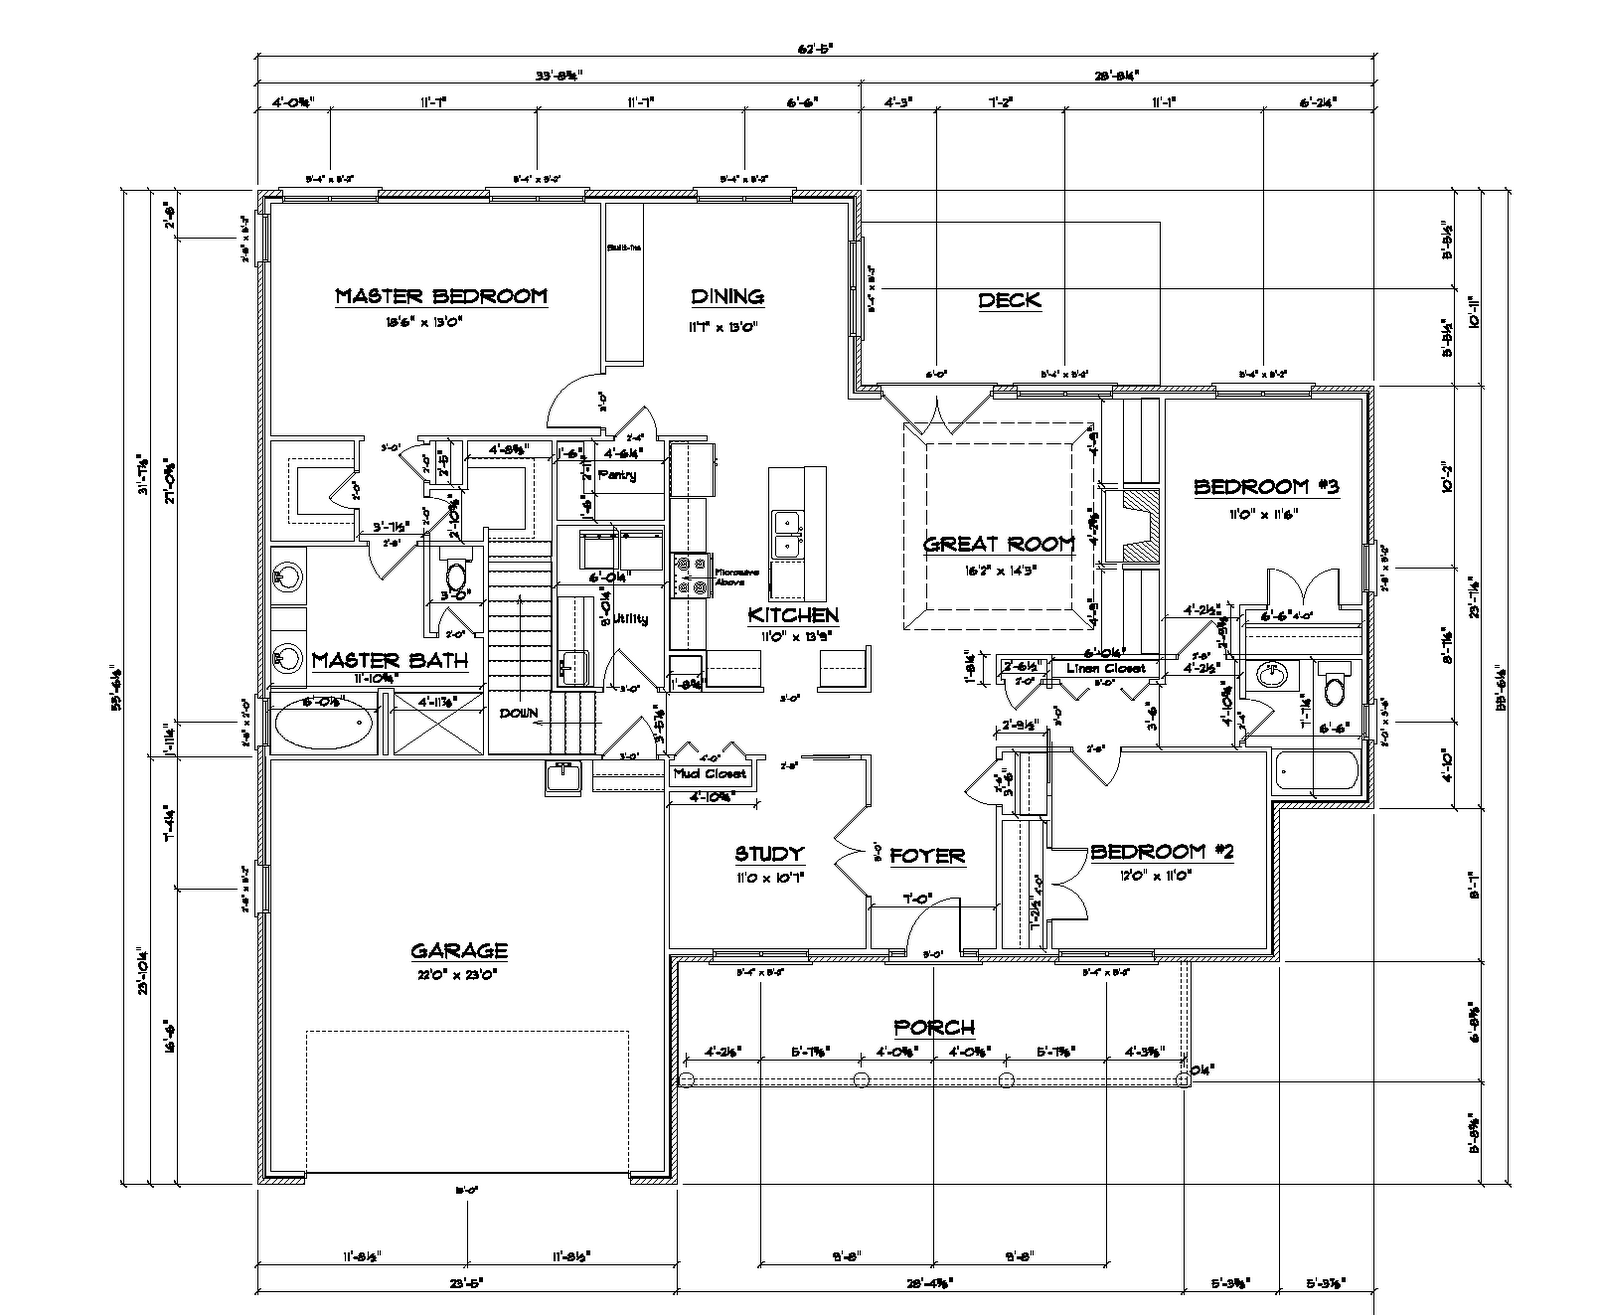 download this house plans colection picture